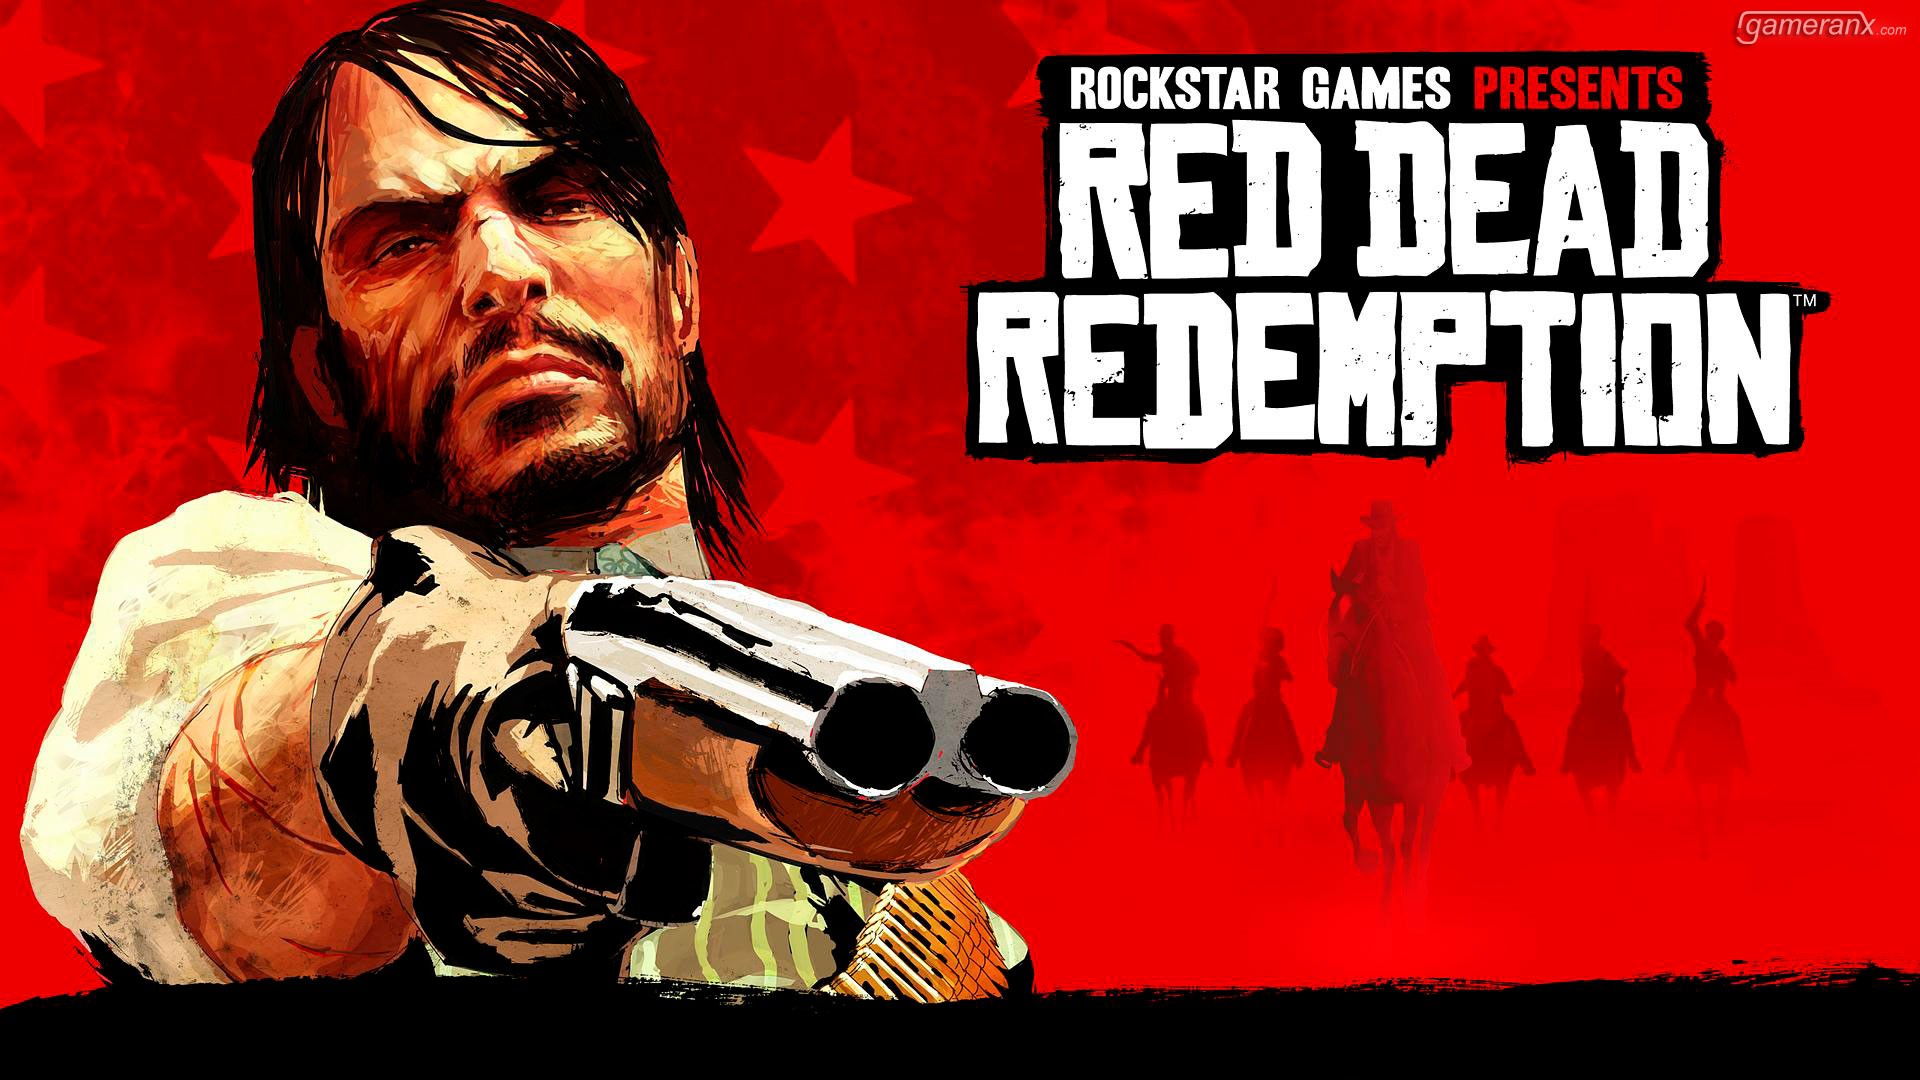 Red Dead Redemption Wallpaper Download Free Cool Full Hd